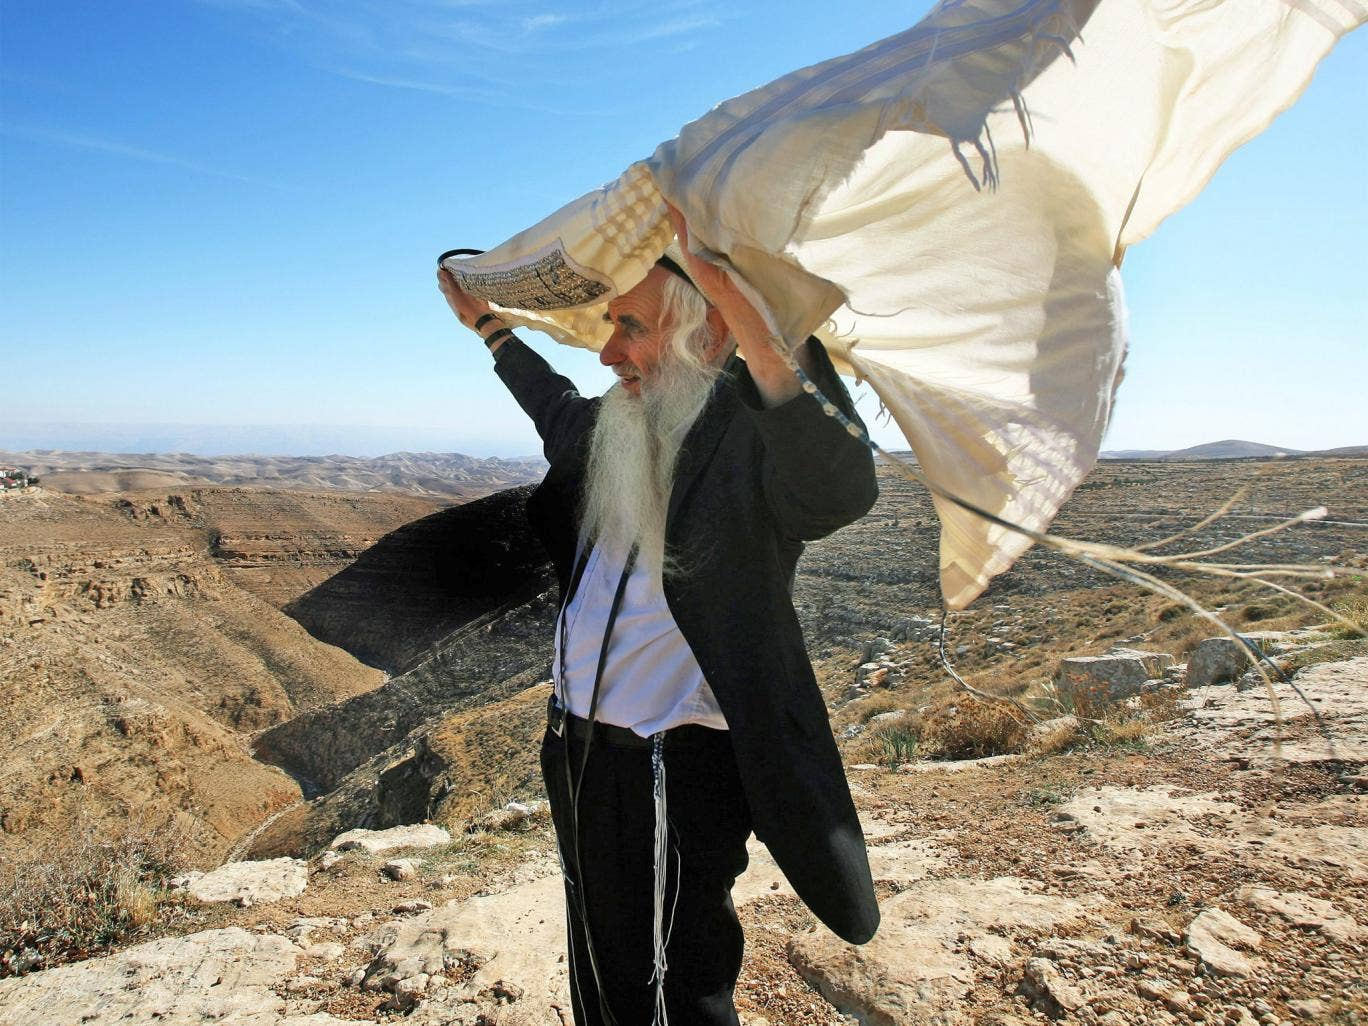 Rabbi Froman with his peace shawl caught in the wind